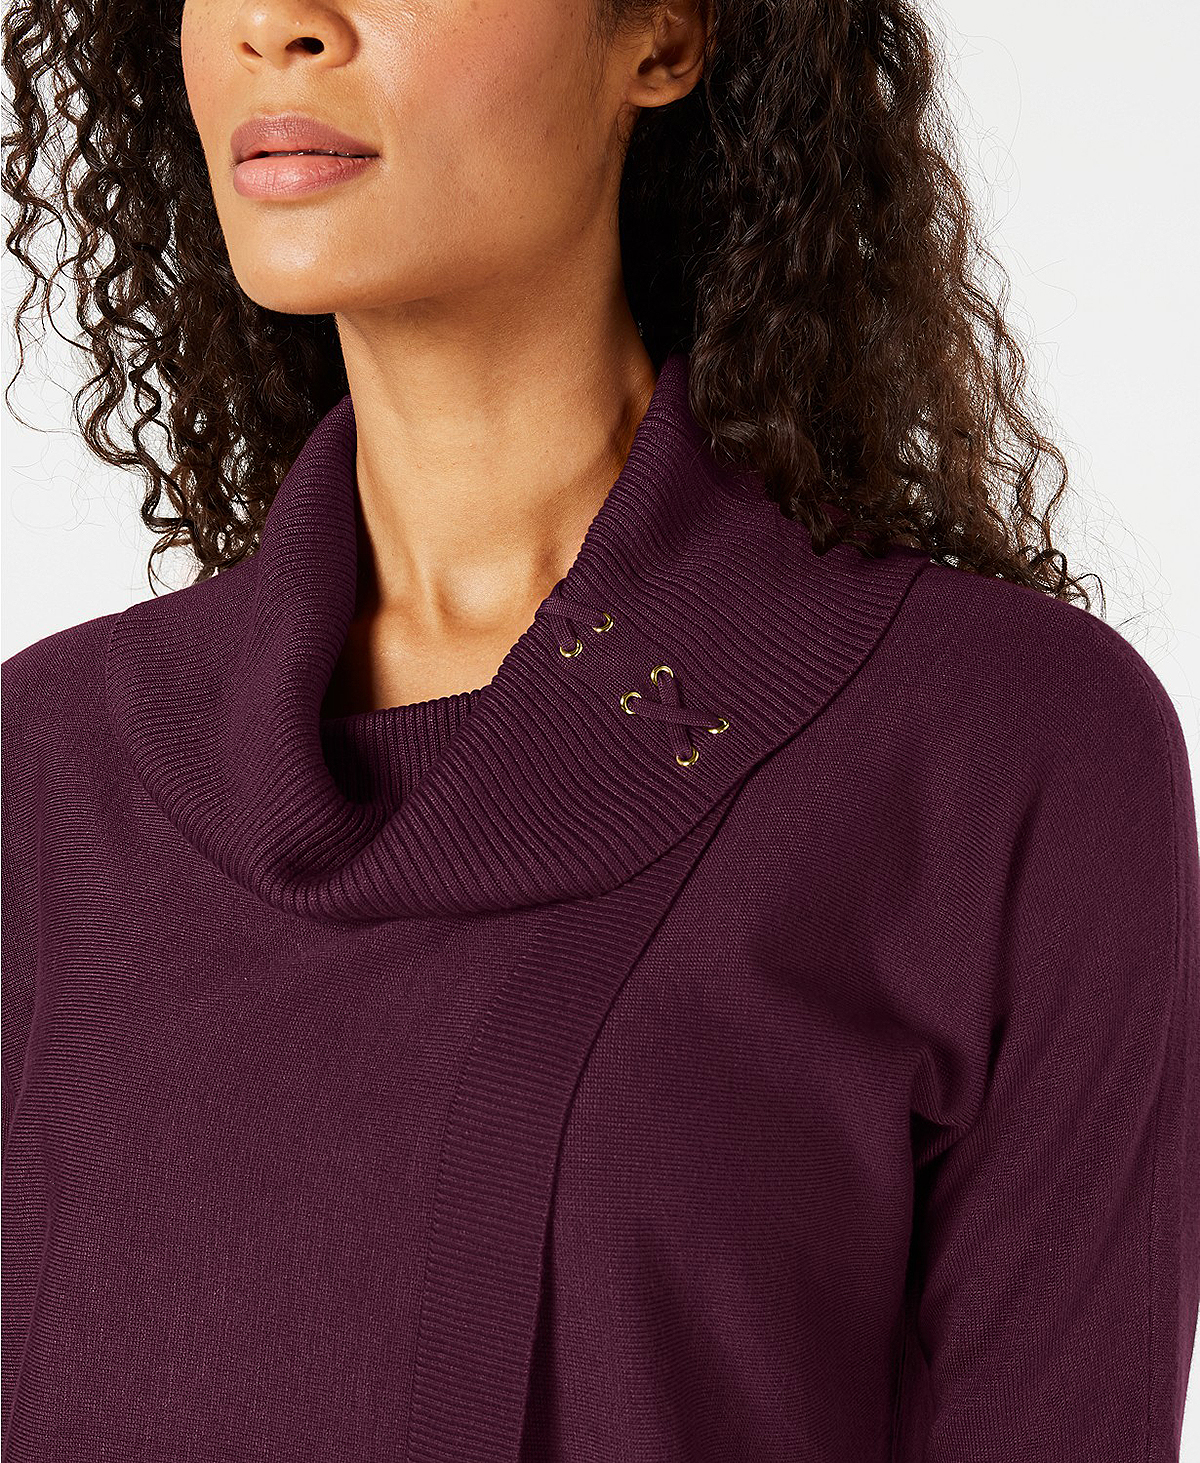 48 Hours Only! This Staple Sweater Is 66% Off and Absolutely Perfect